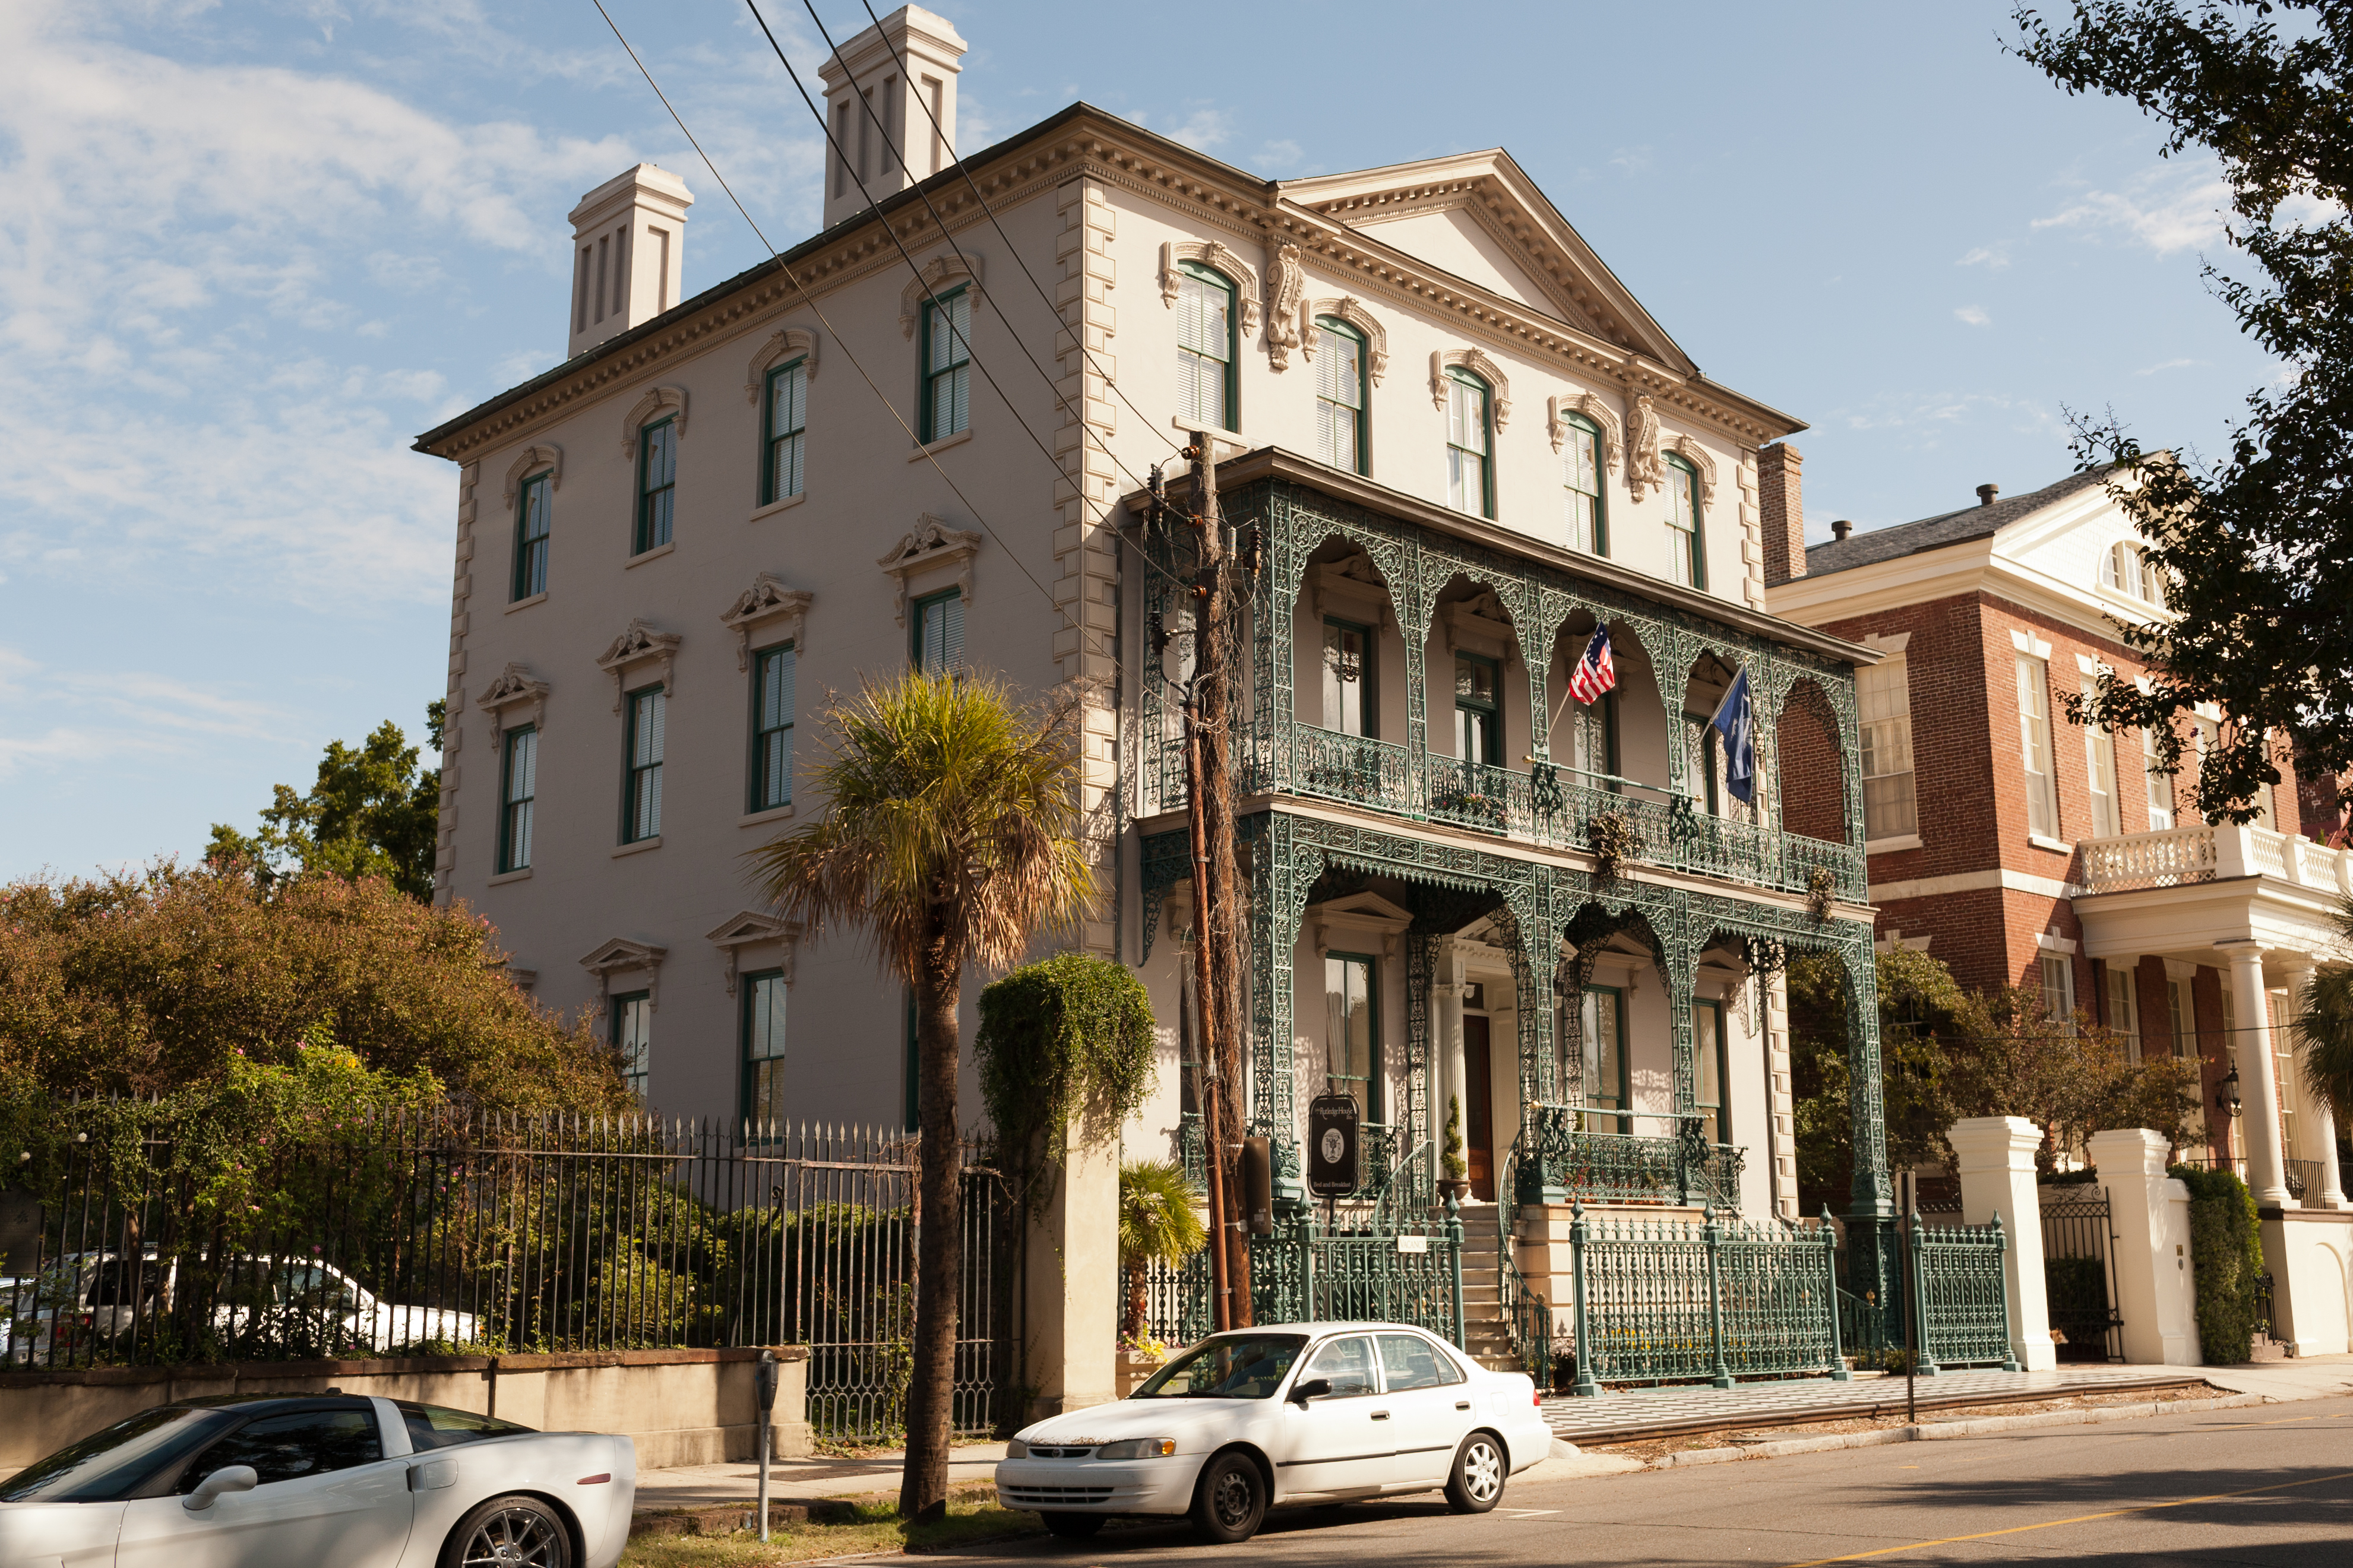 Charleston Mansions in addition 19564869 in addition Habersham Wins Honor as well Plantations South Carolina also McLeod Plantation. on old houses charleston south carolina